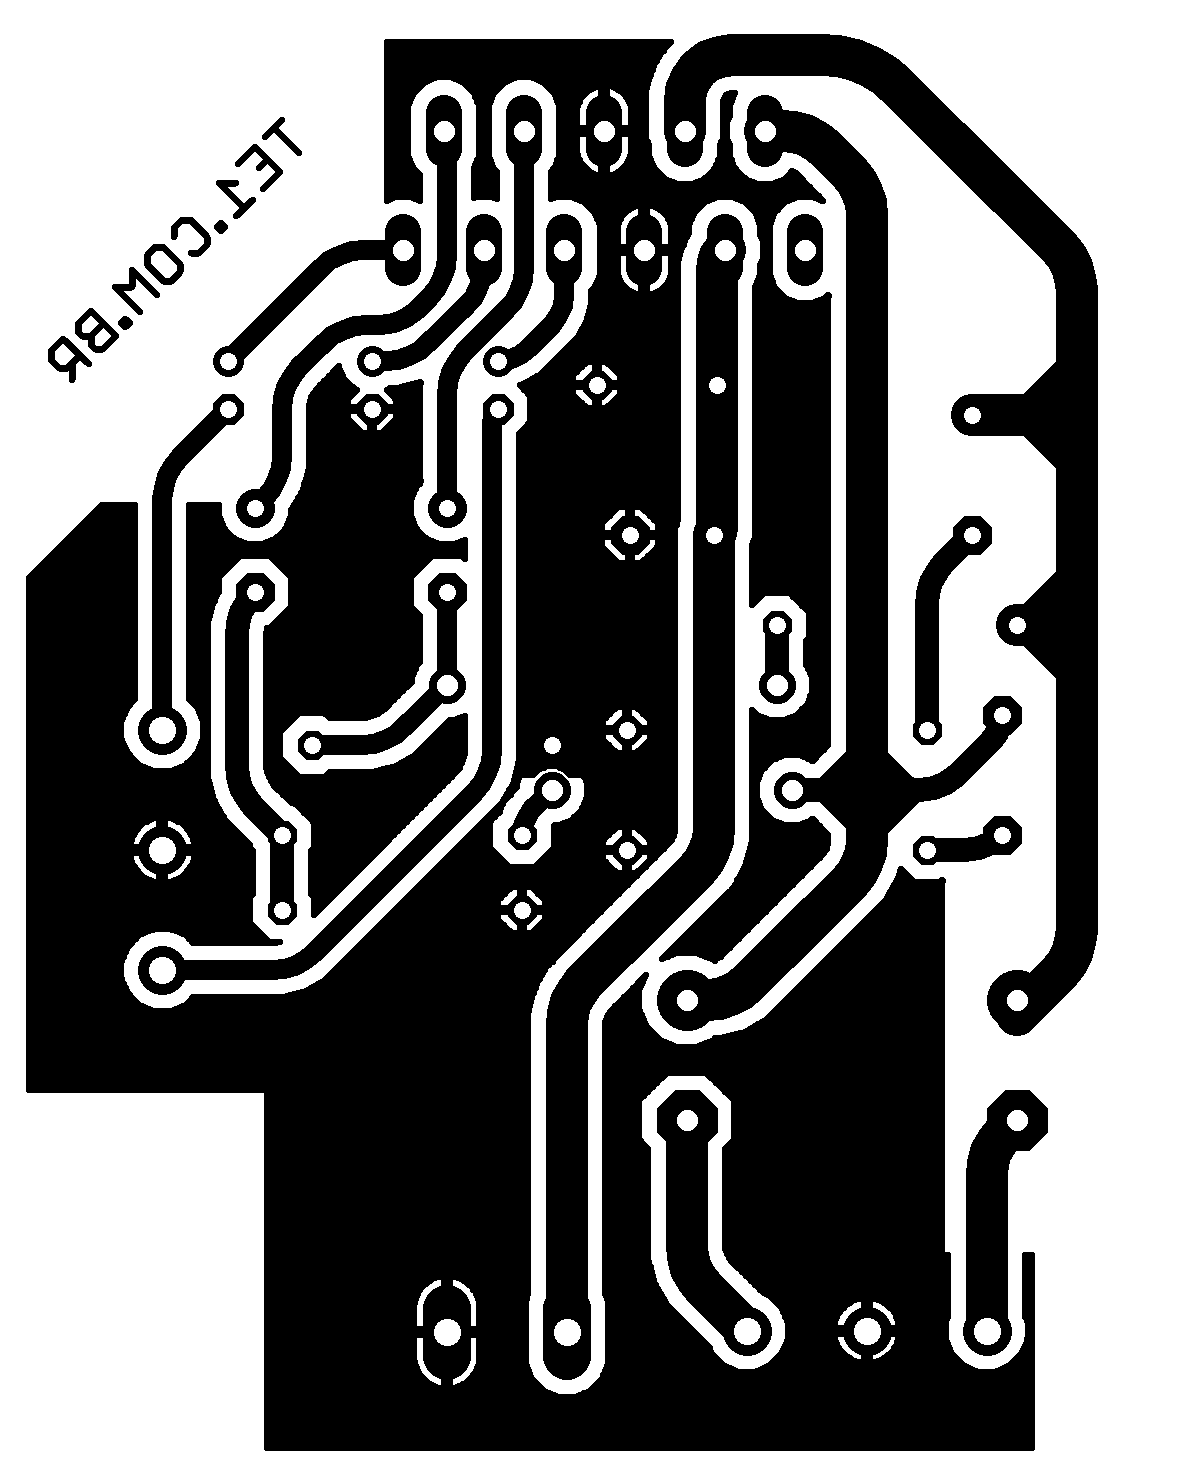 tda stereo amplifier pcb. png.